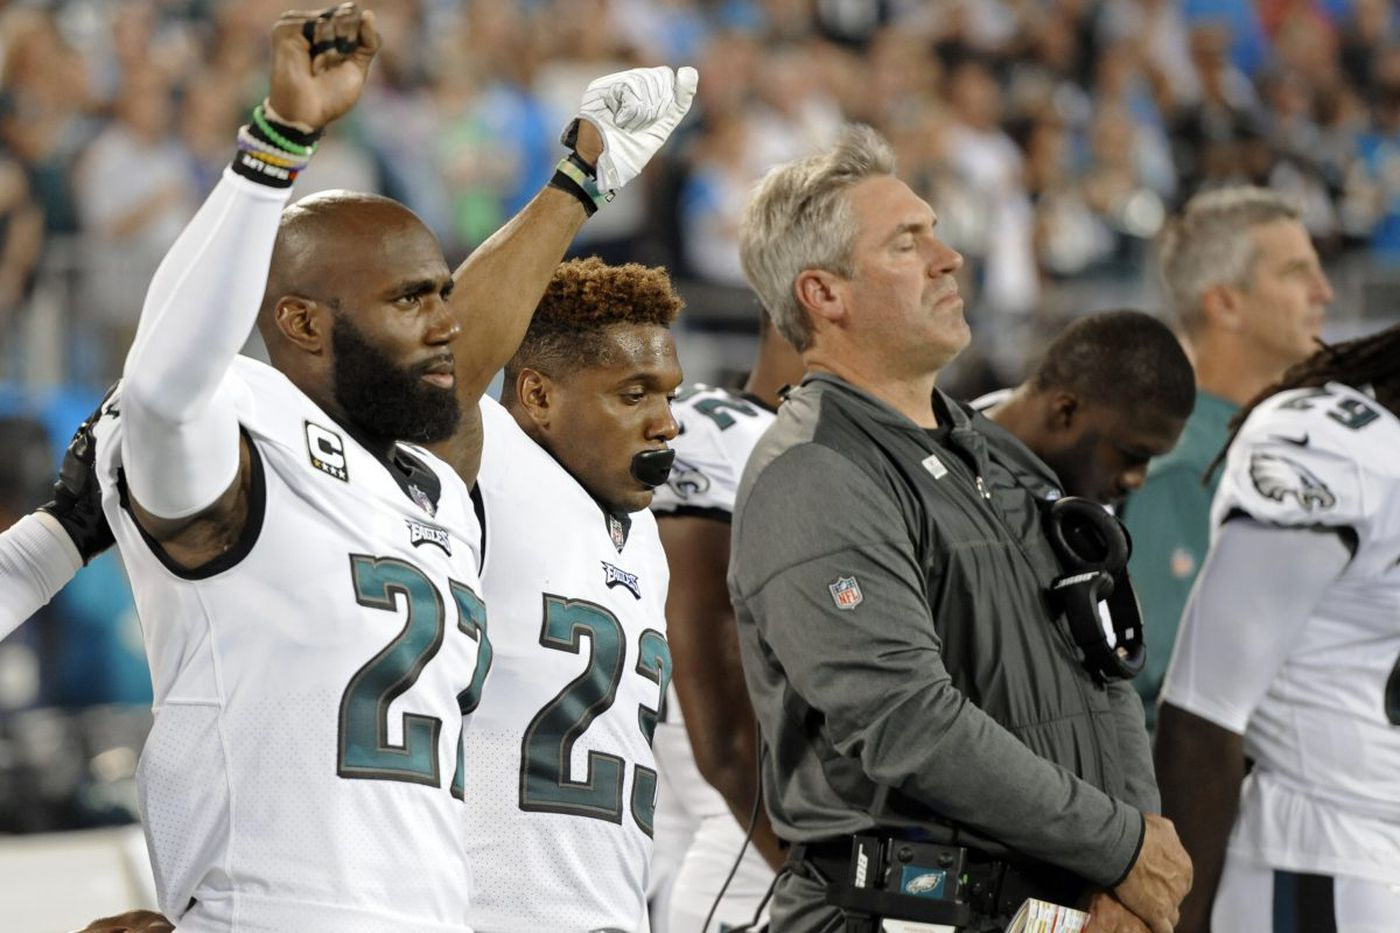 National anthem at Eagles-Panthers game brings little protest